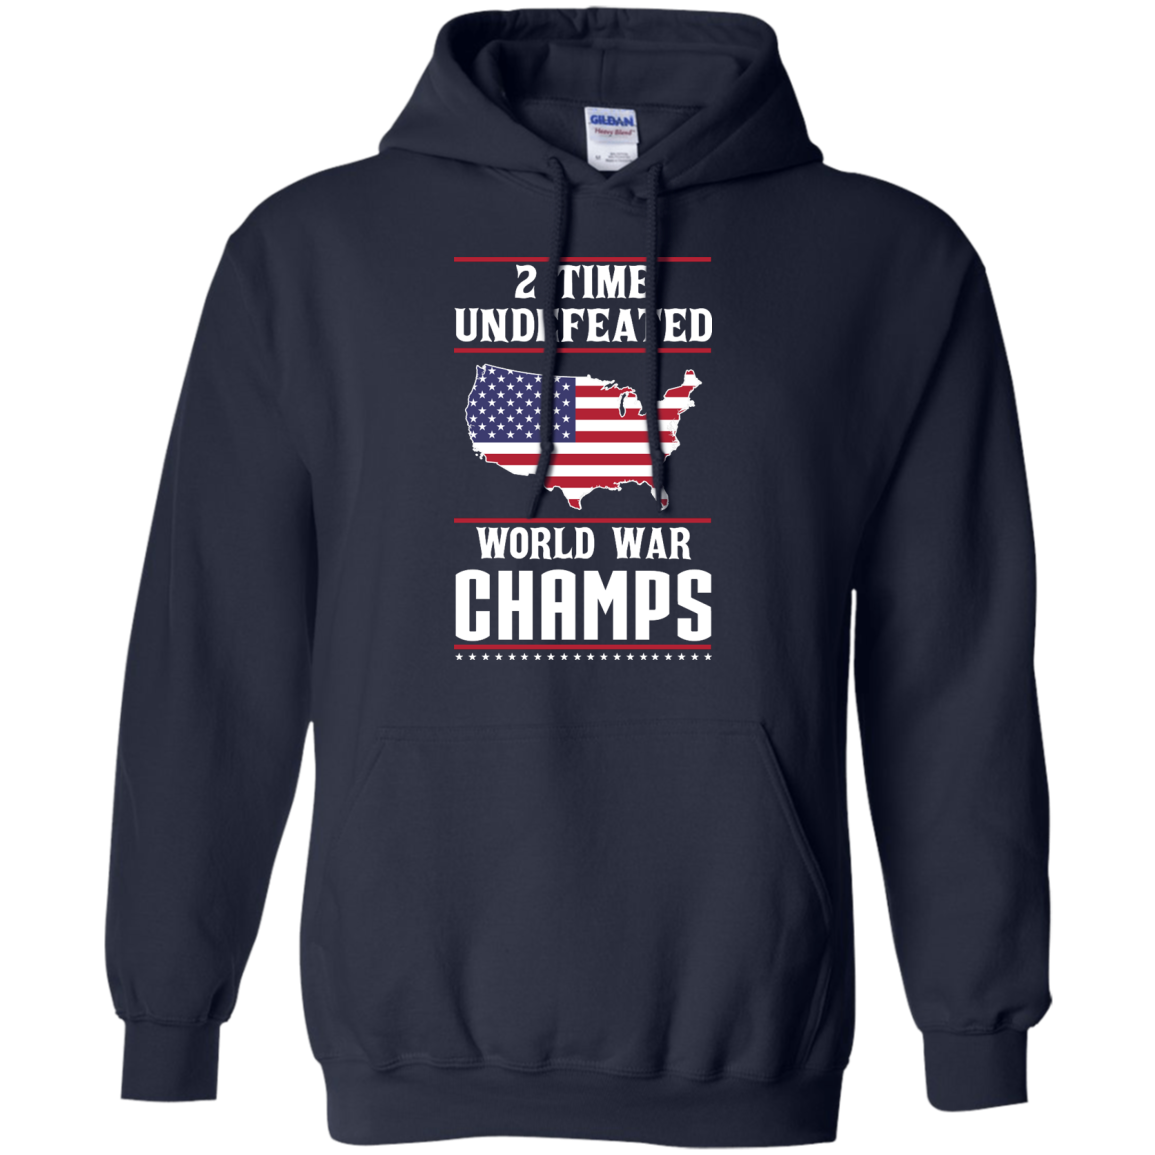 image 1181px Two time undefeated world war champs t shirt, hoodies, long sleeves